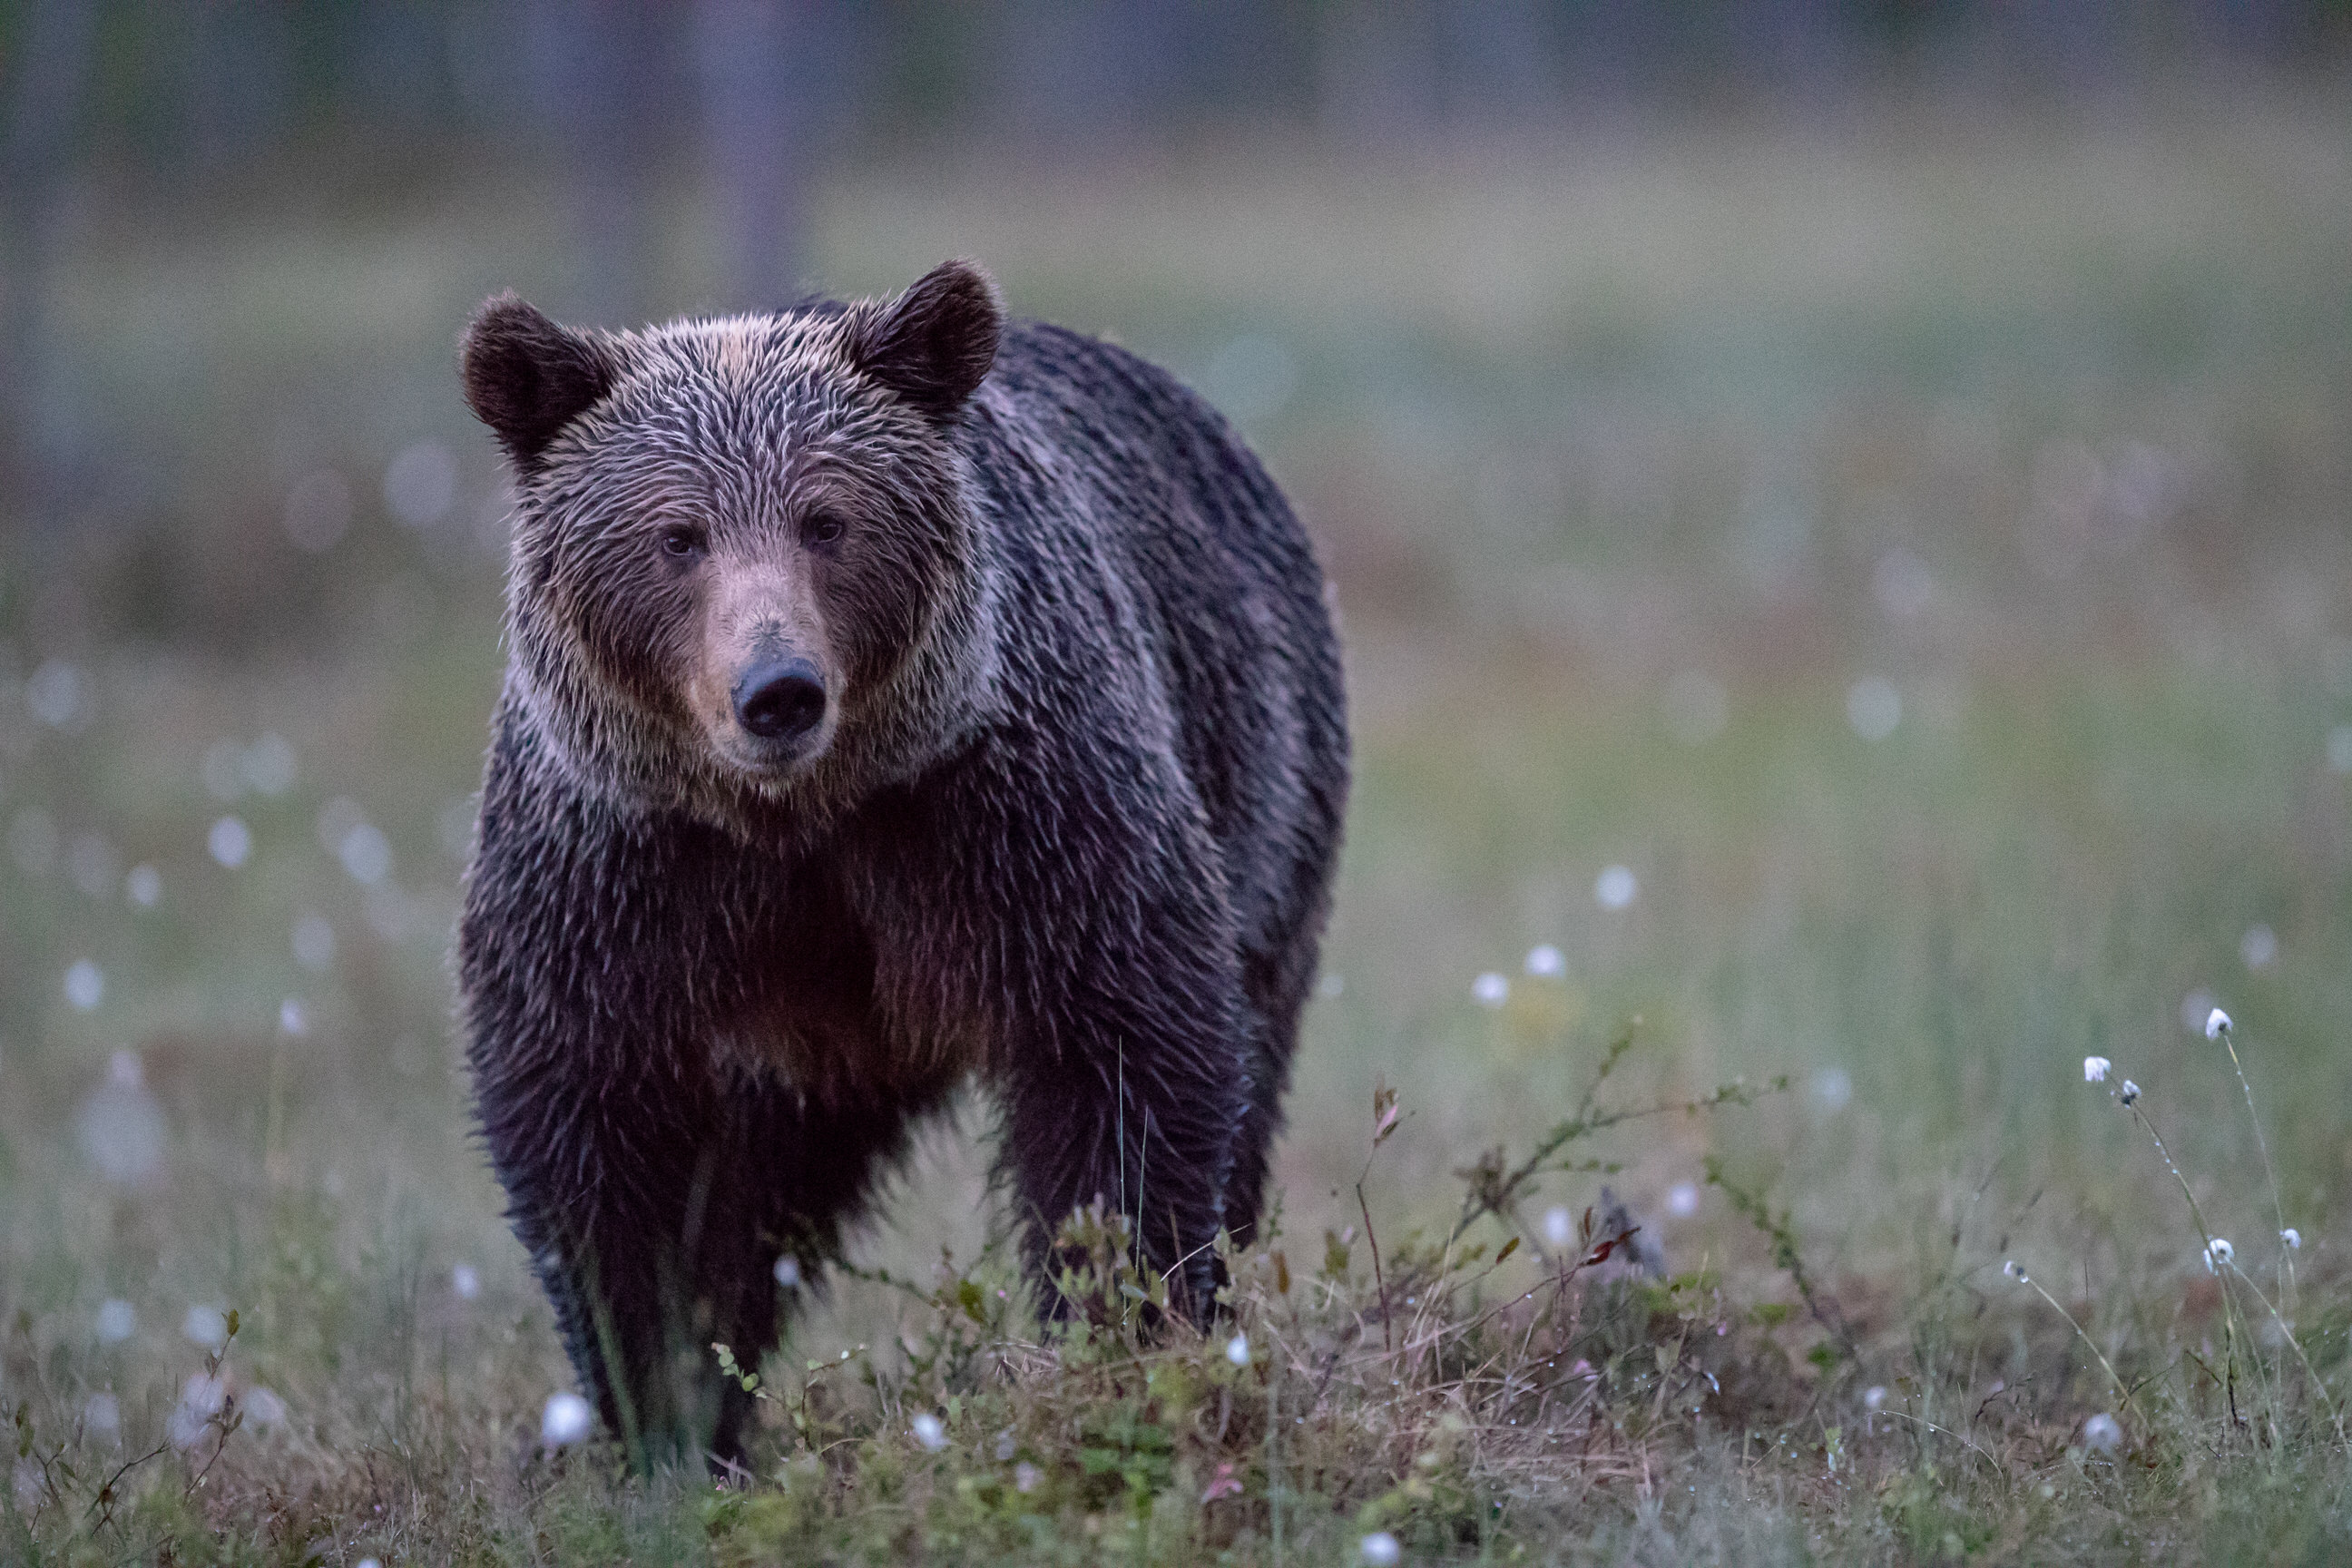 Finland - Brown bear